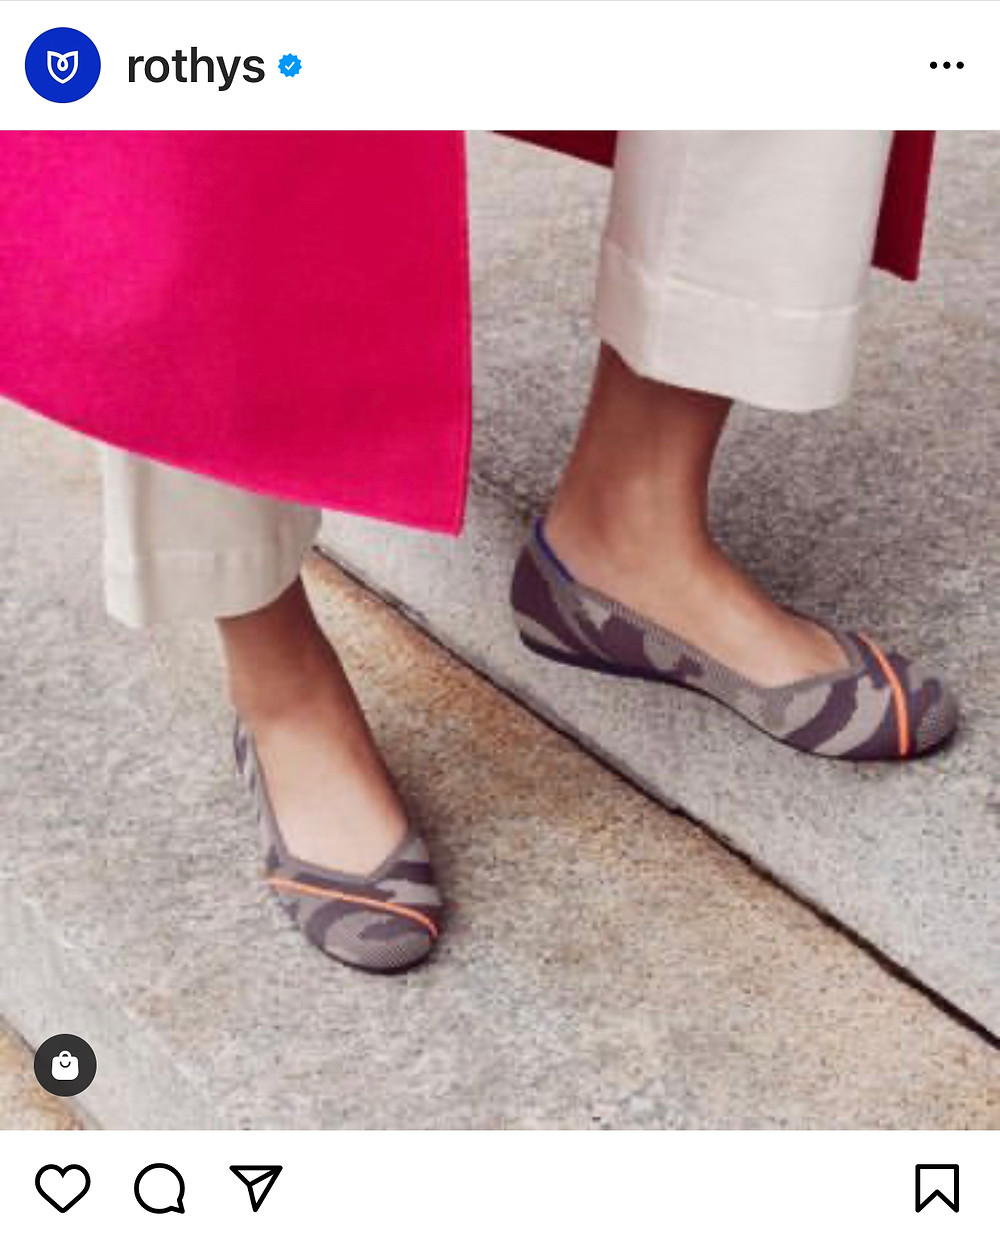 Rothys shoes hertelier